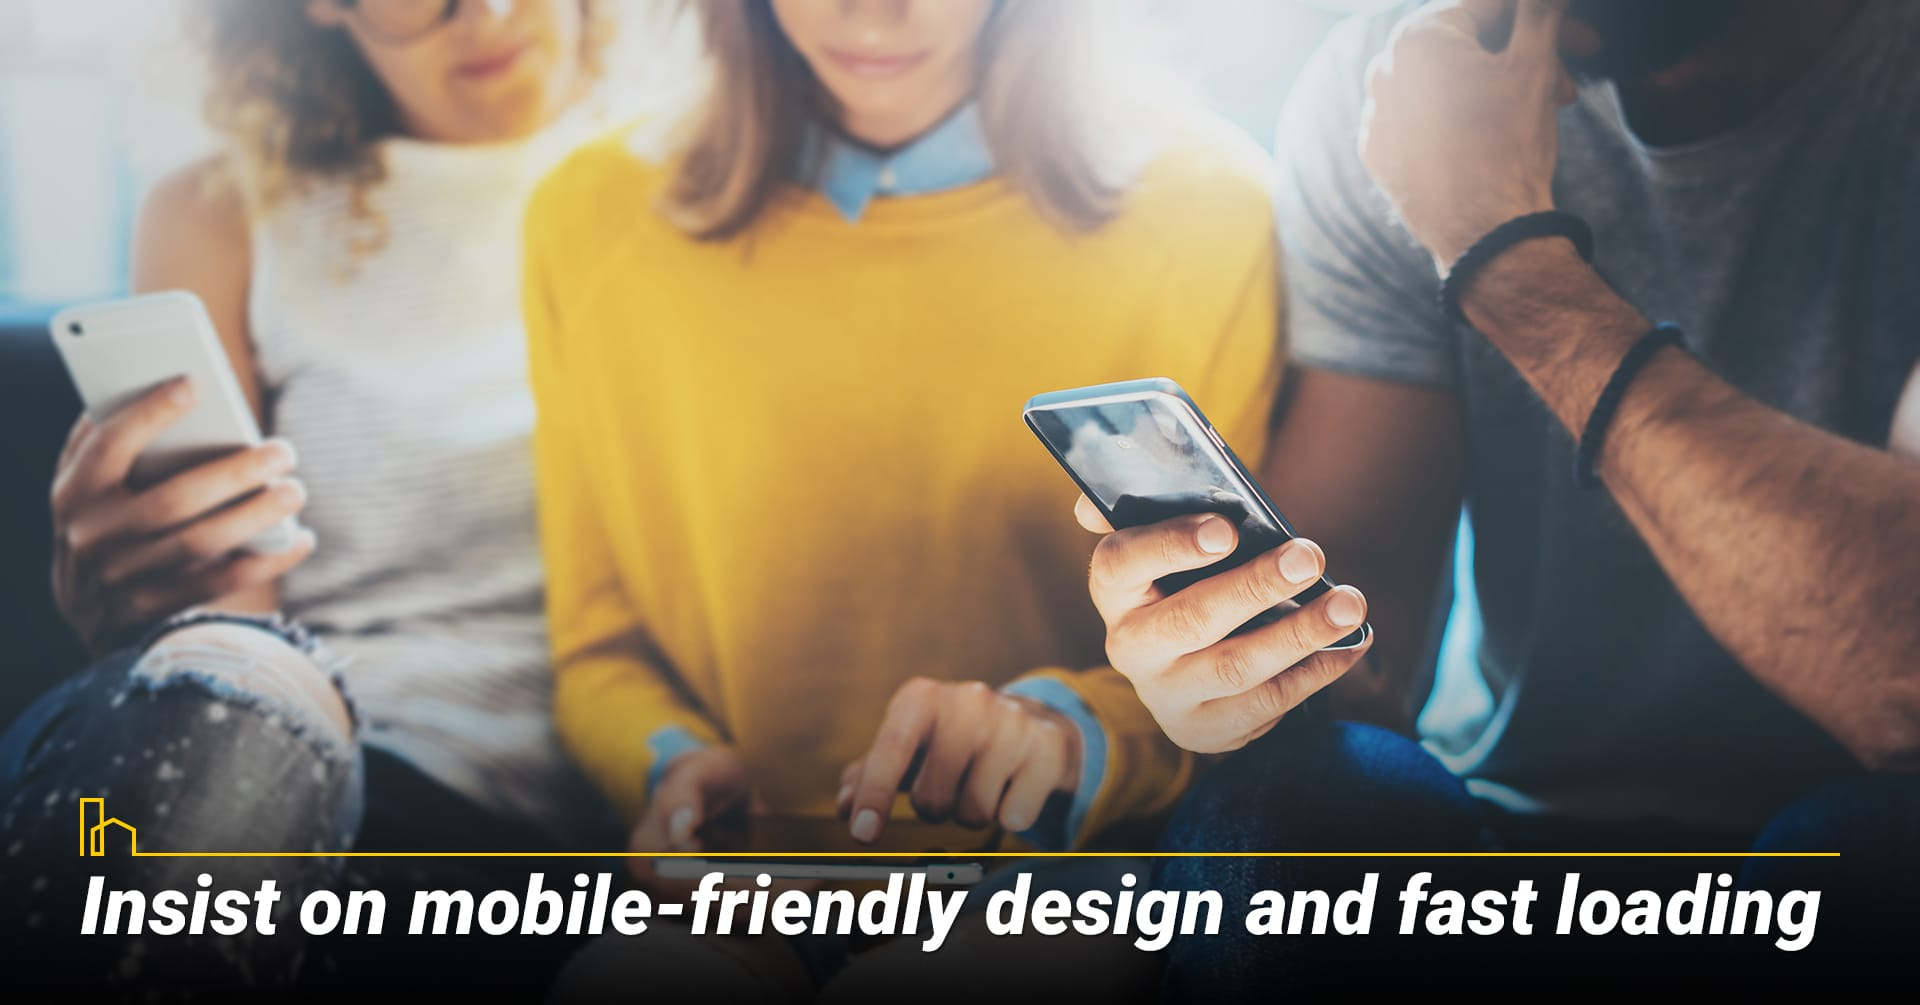 Insist on mobile-friendly design, attractive presentation, and fast loading